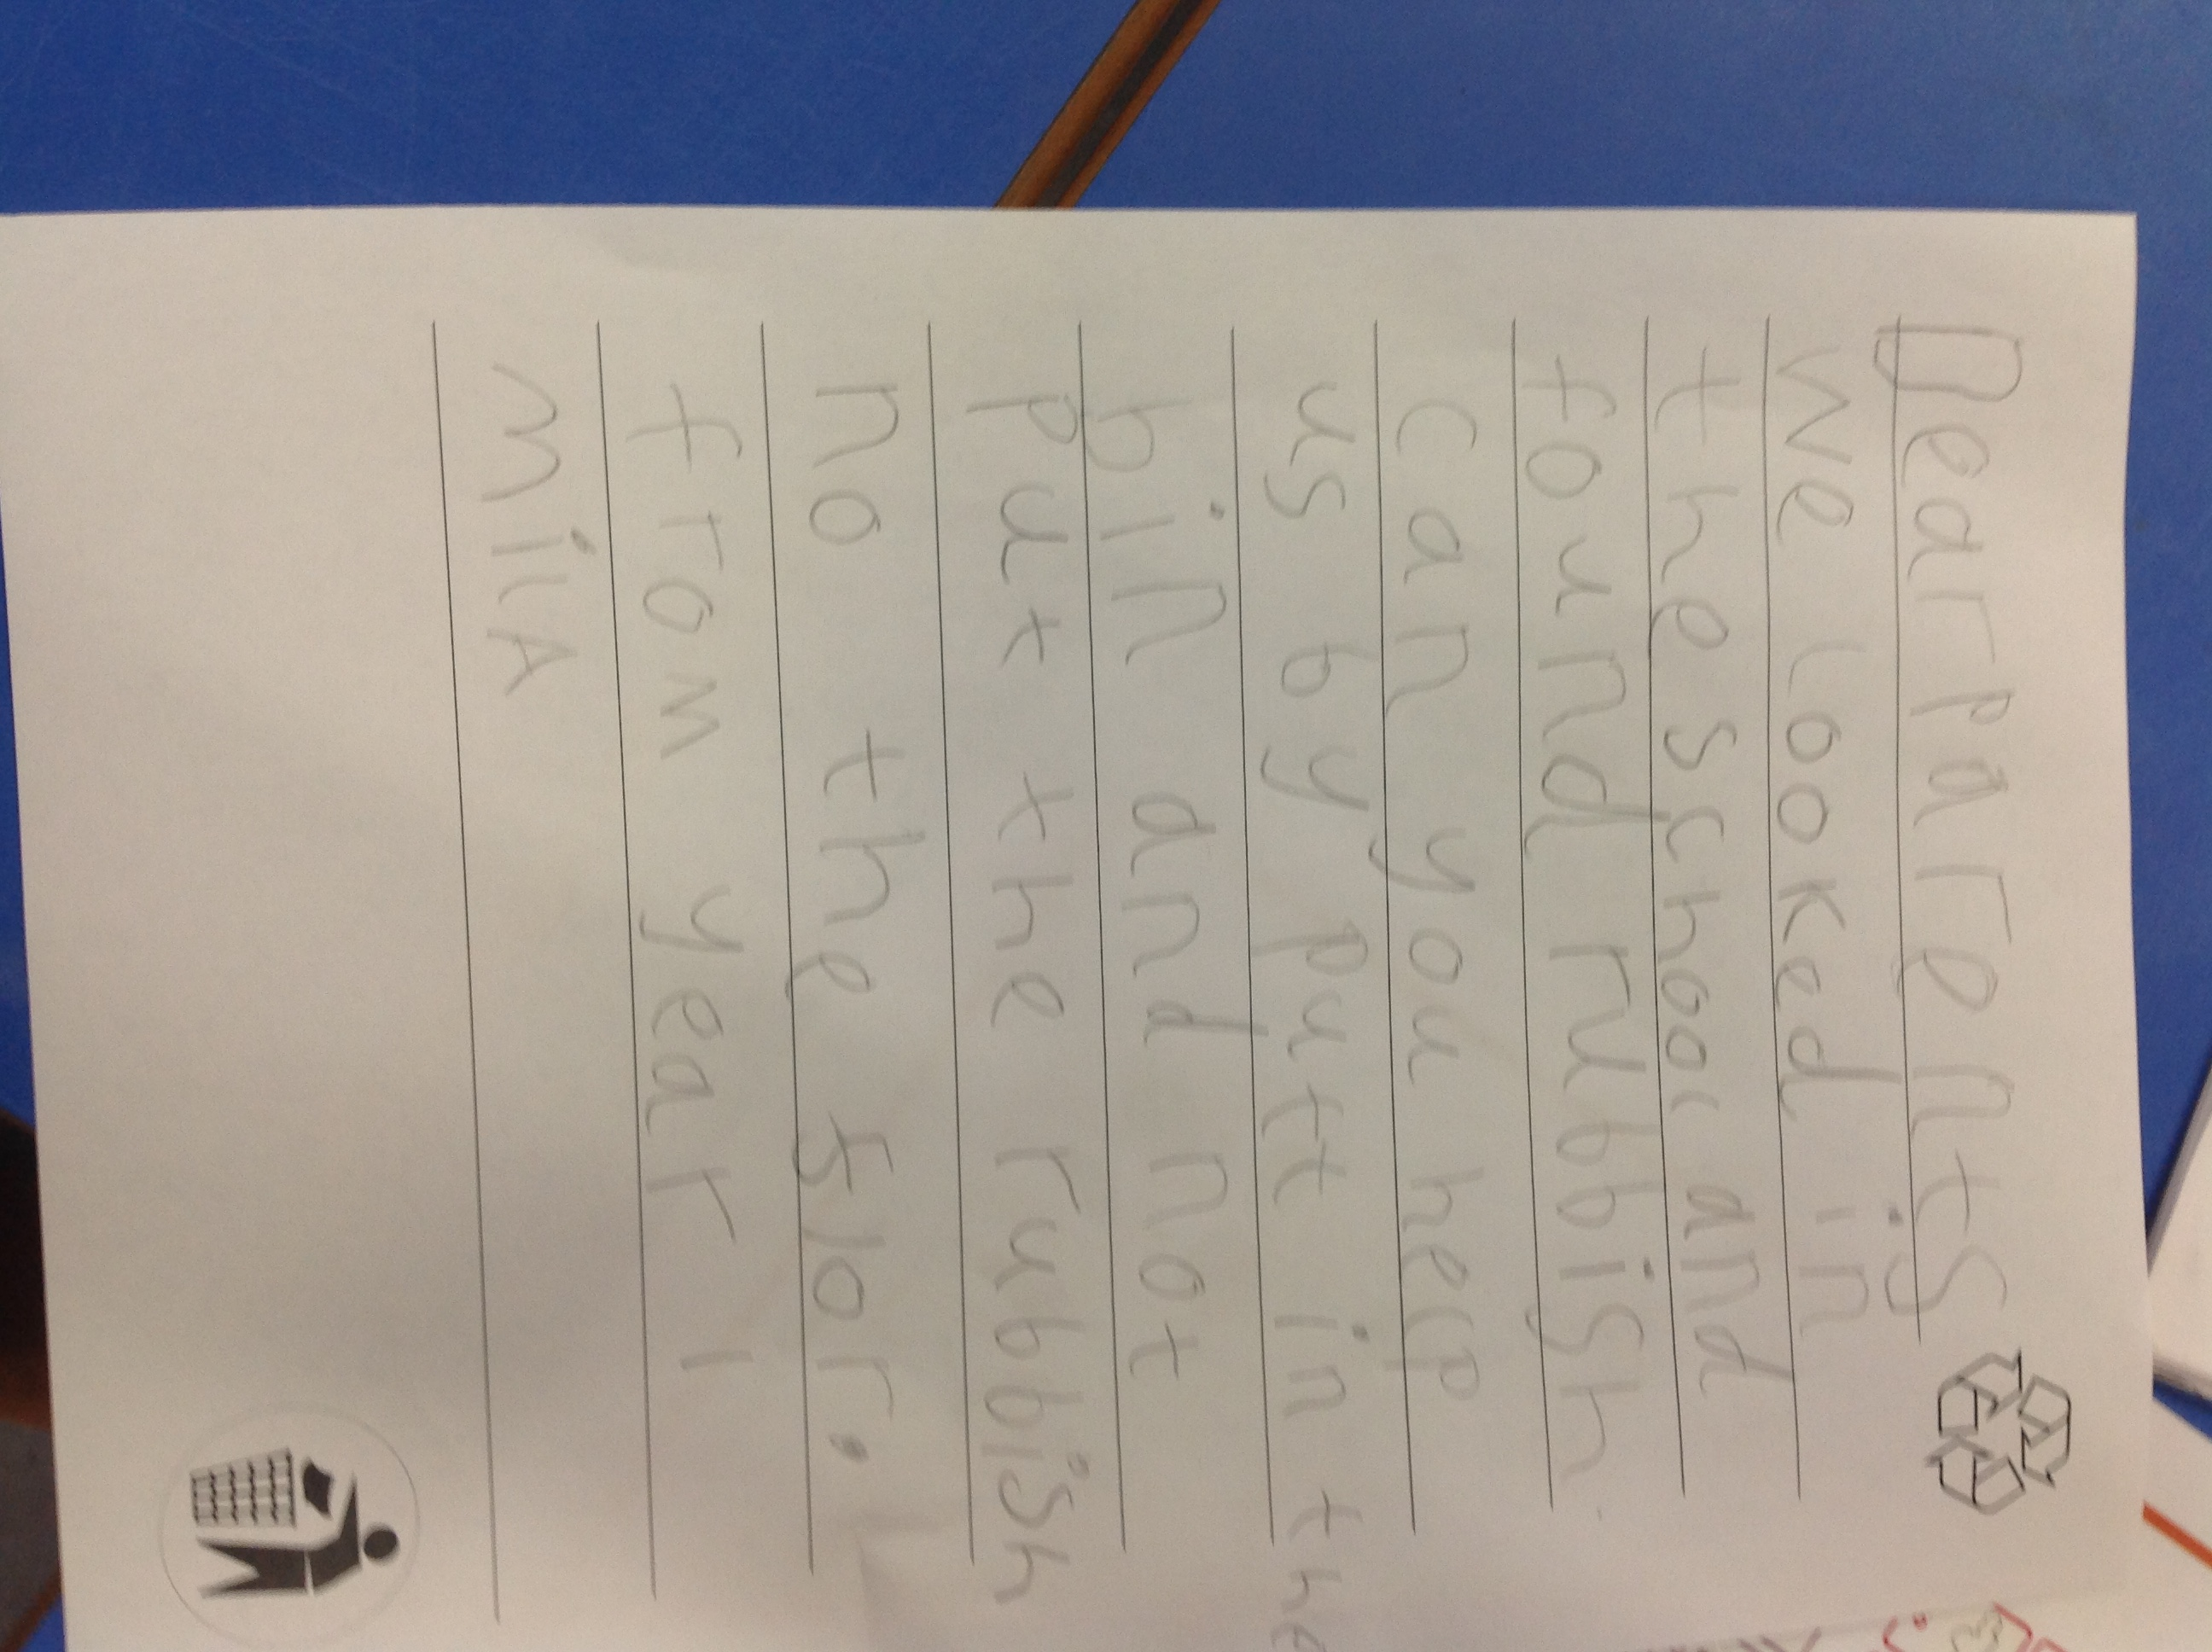 Mila's excellent writing!